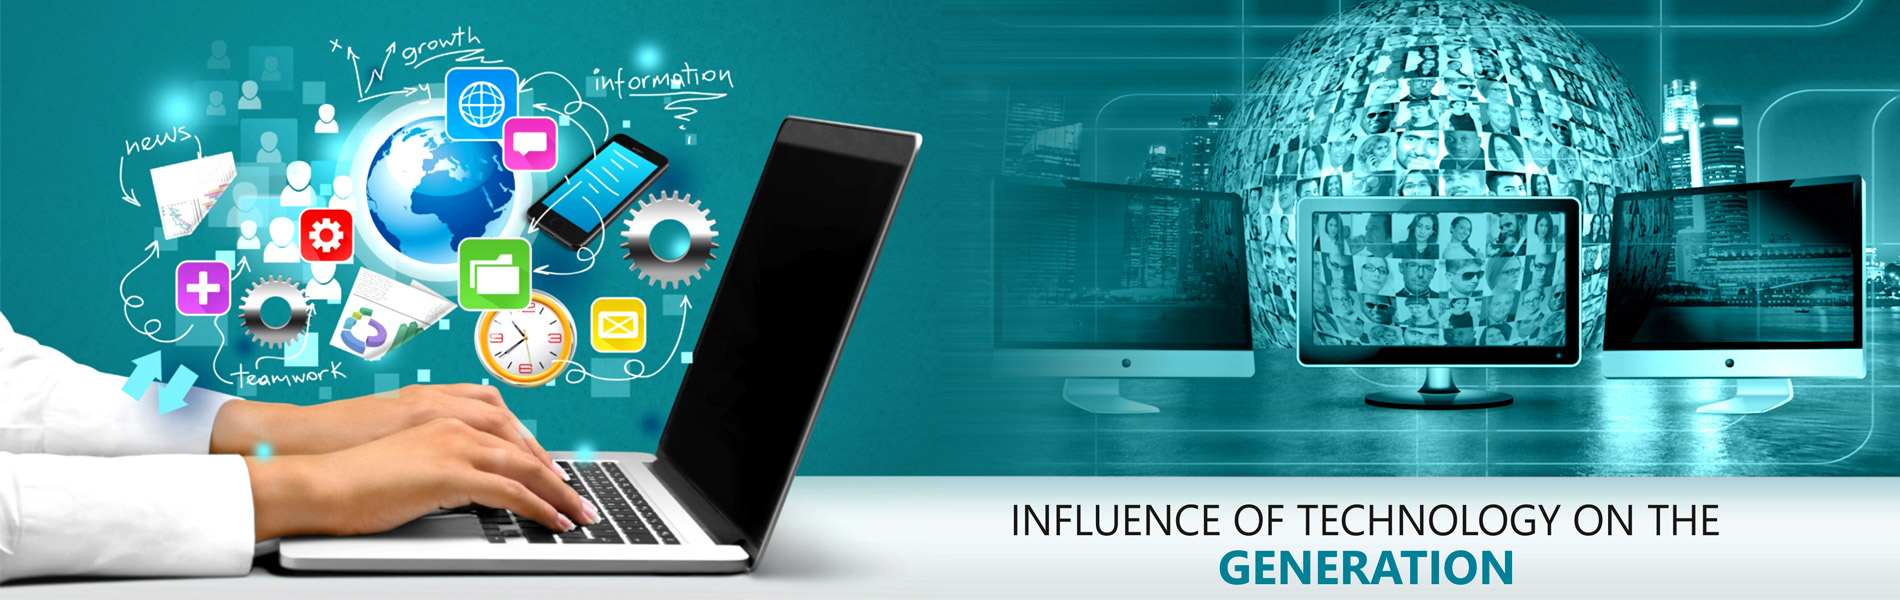 Influence-of-Technology-on-the-Generation